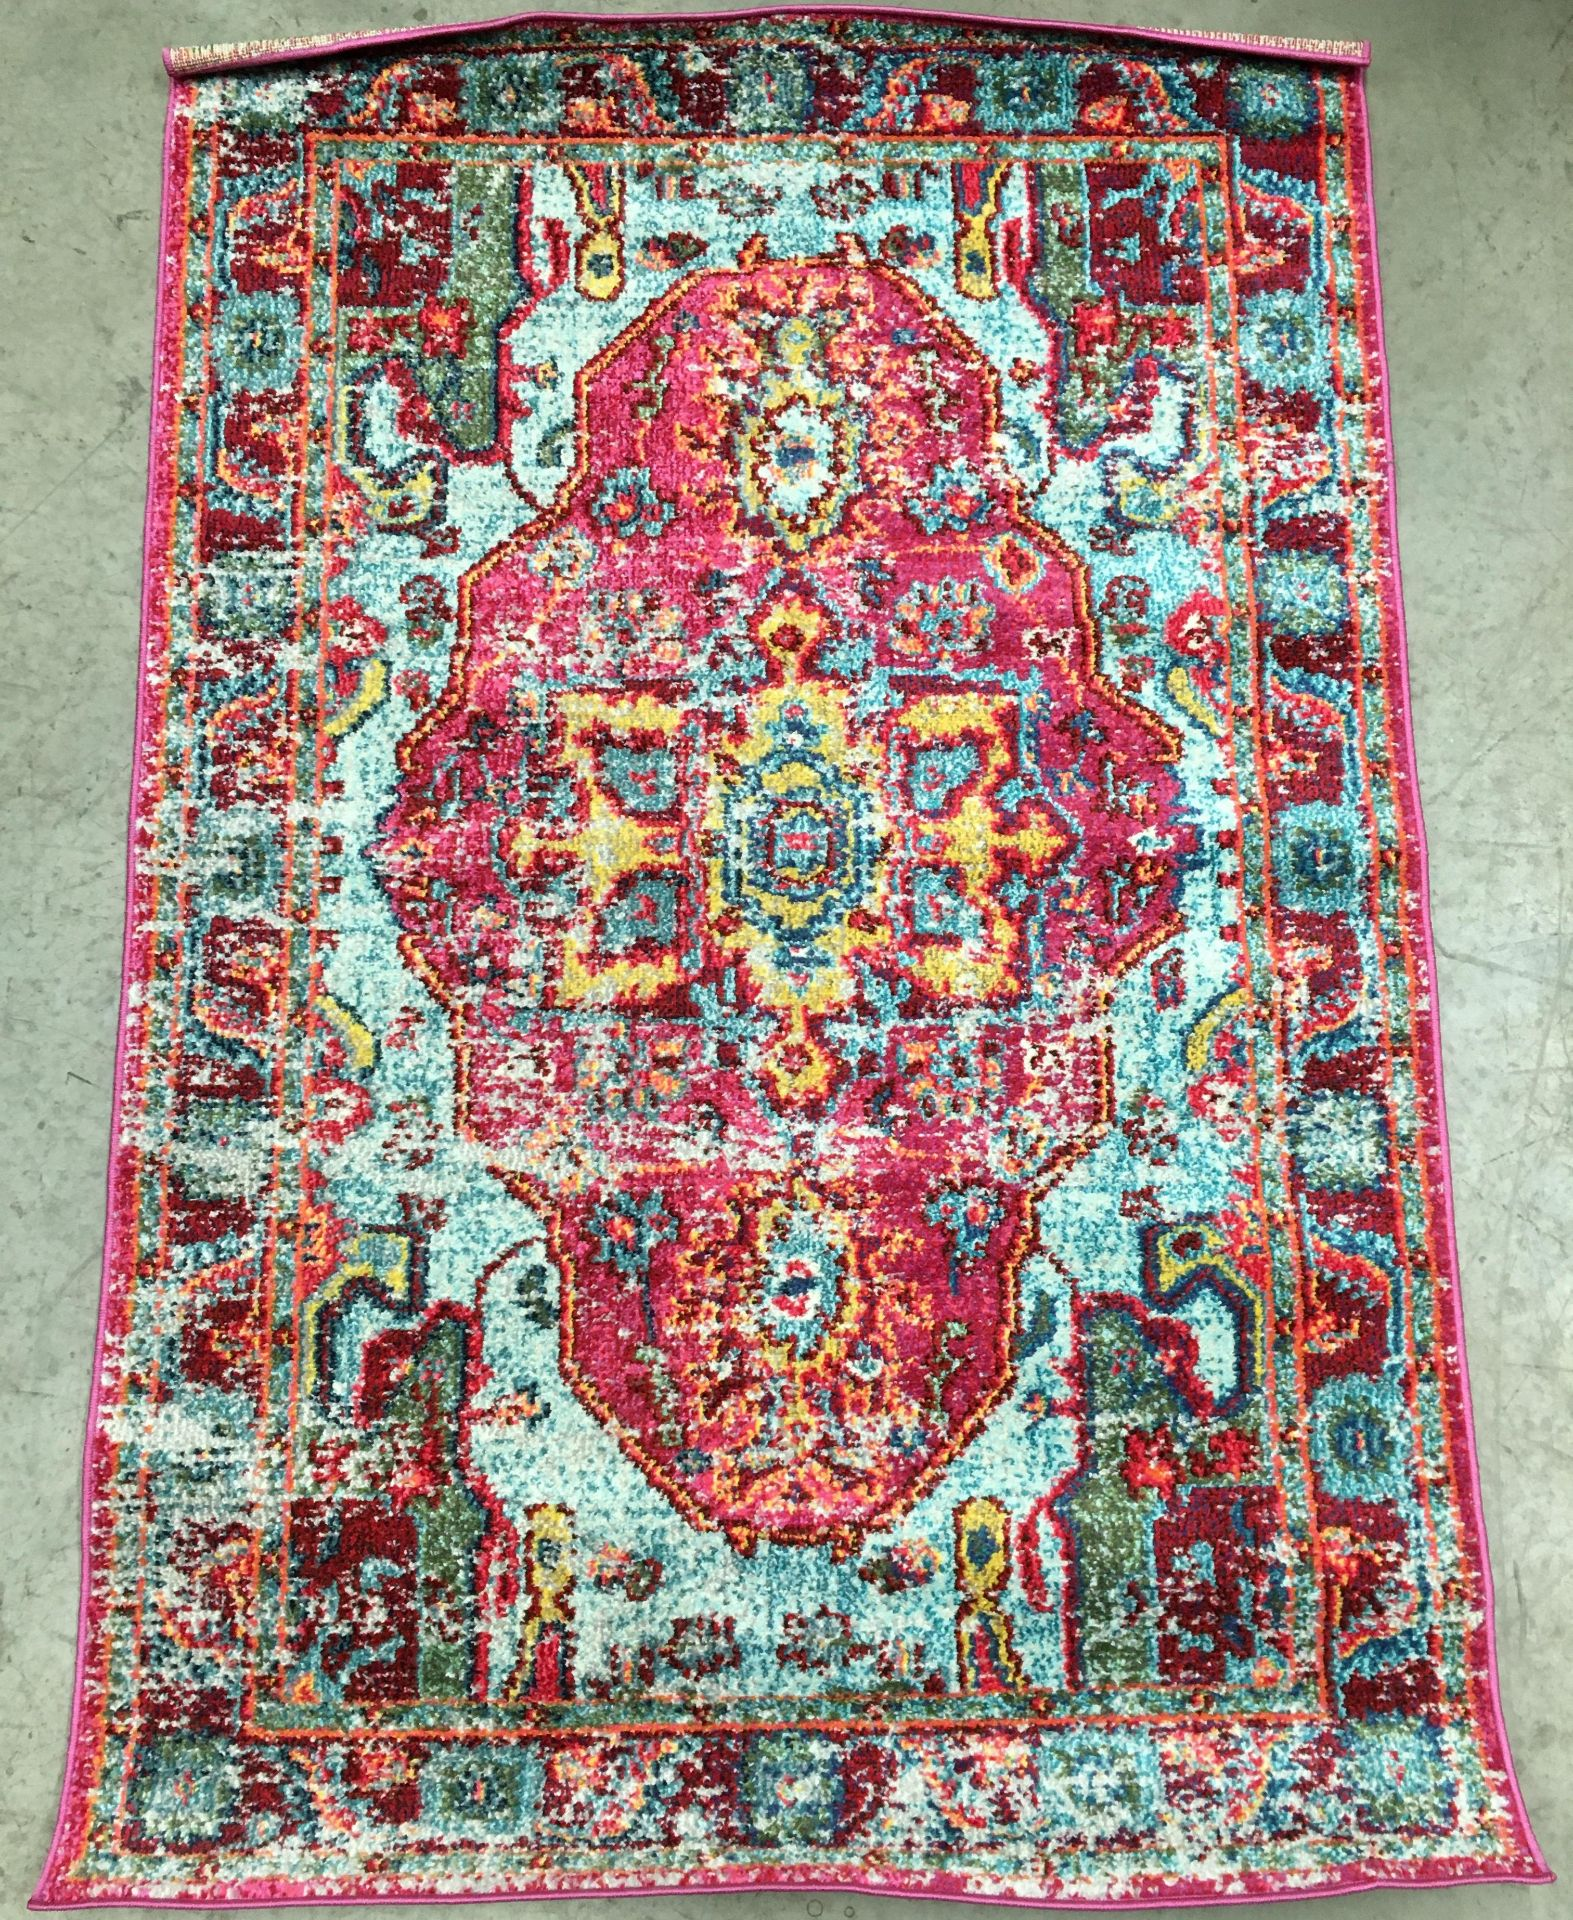 Lot 4 - A Casablanca KKCB11A multi coloured rug - 122cm x 183cm